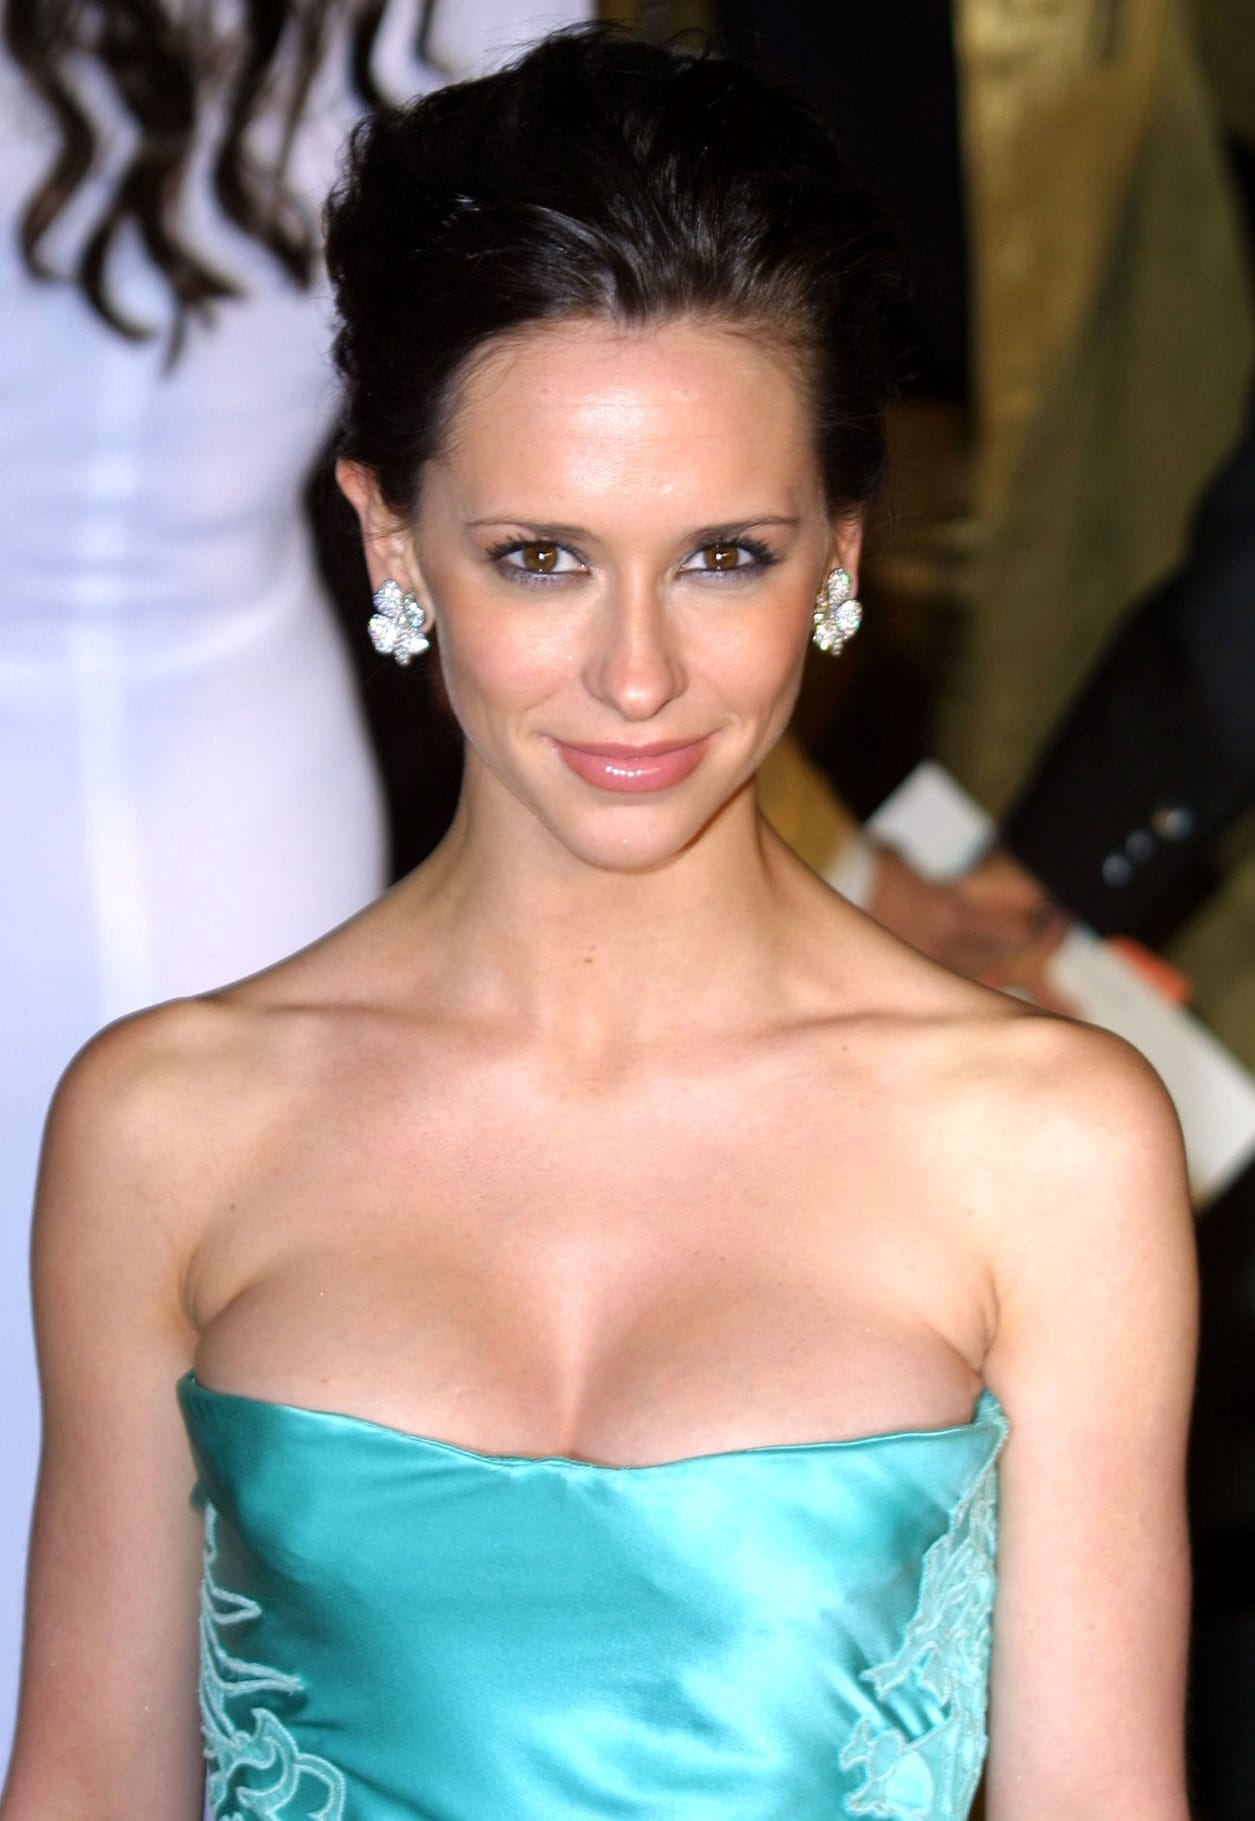 Jennifer Love Hewitt's bikini body and boobs made her a sex symbol in the 1990s